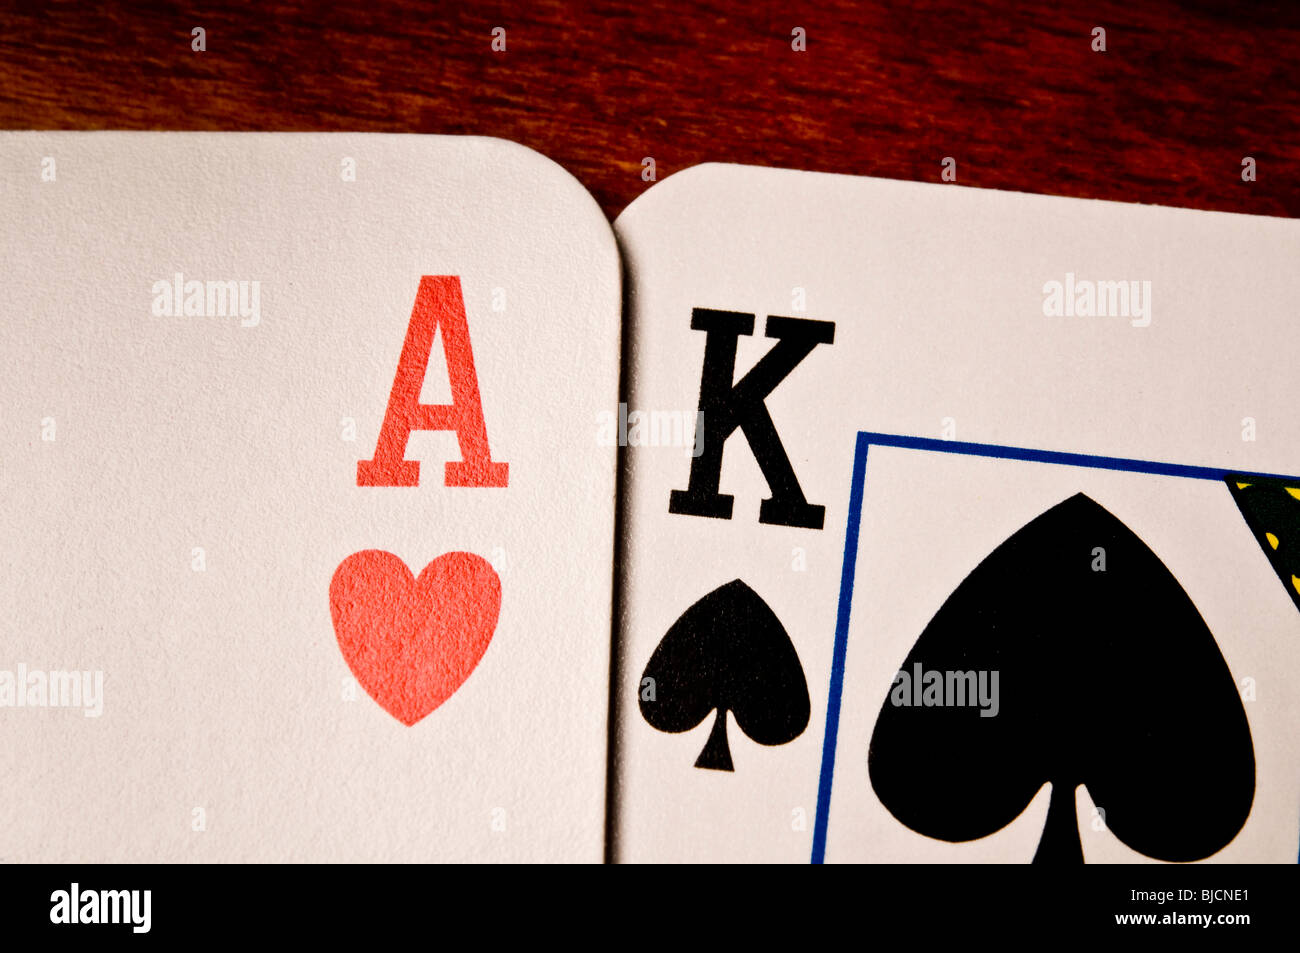 ace and king playing card - Stock Image